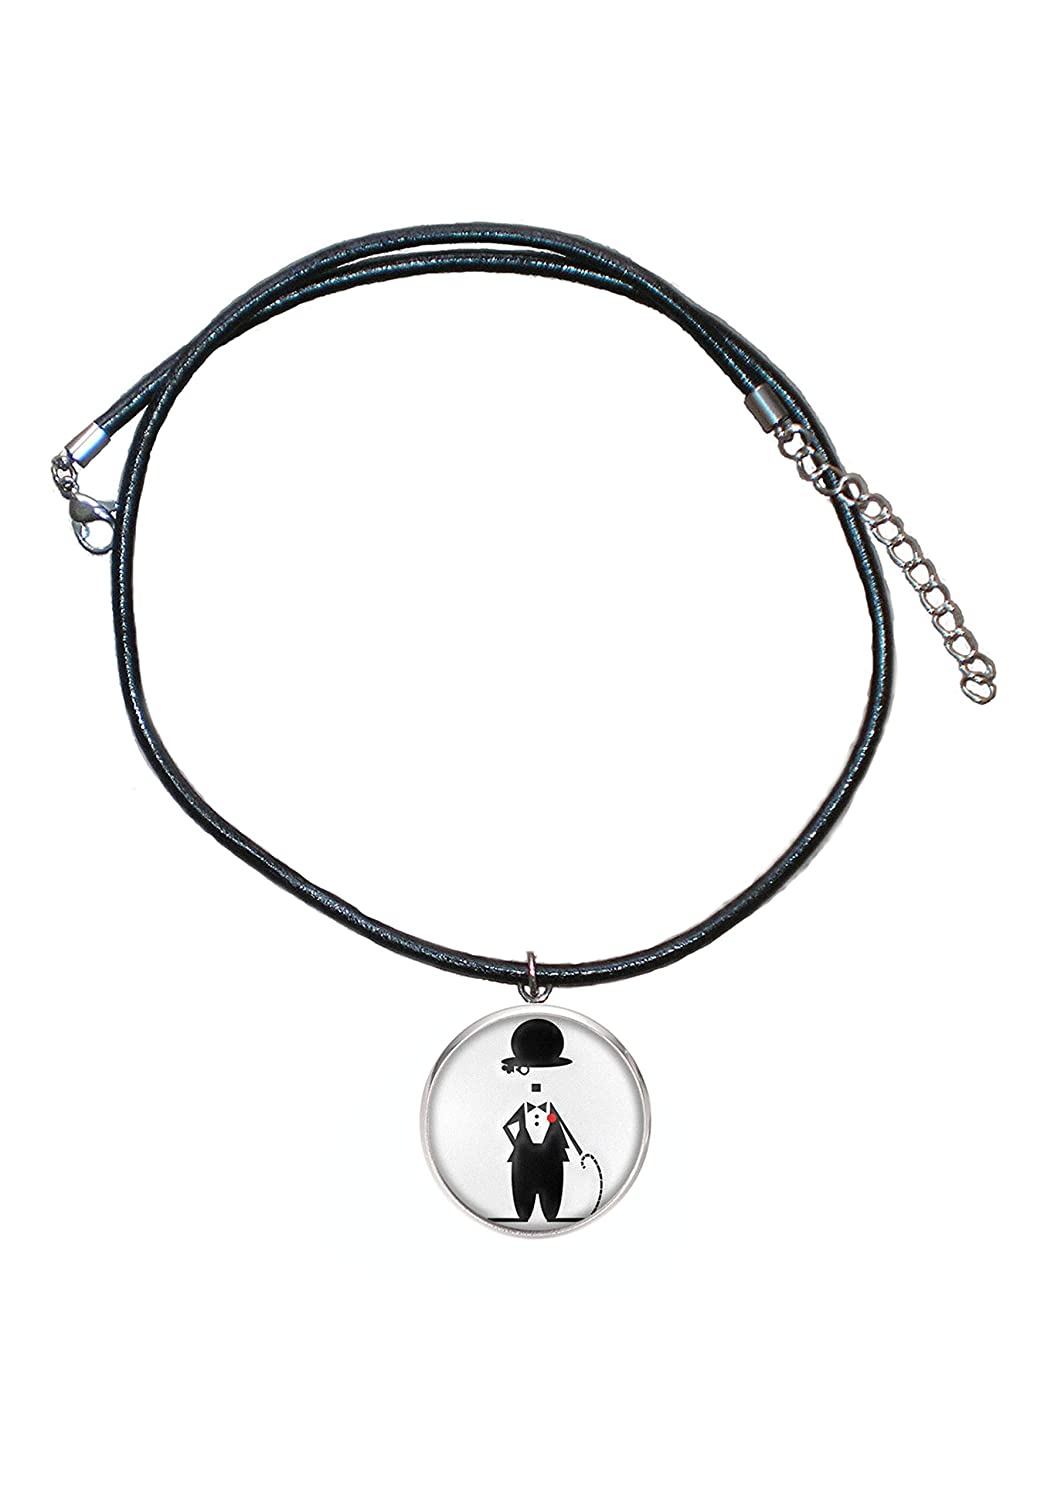 Amazon.com: Stainless Steel Pendant, 30mm, Leather Cord ...